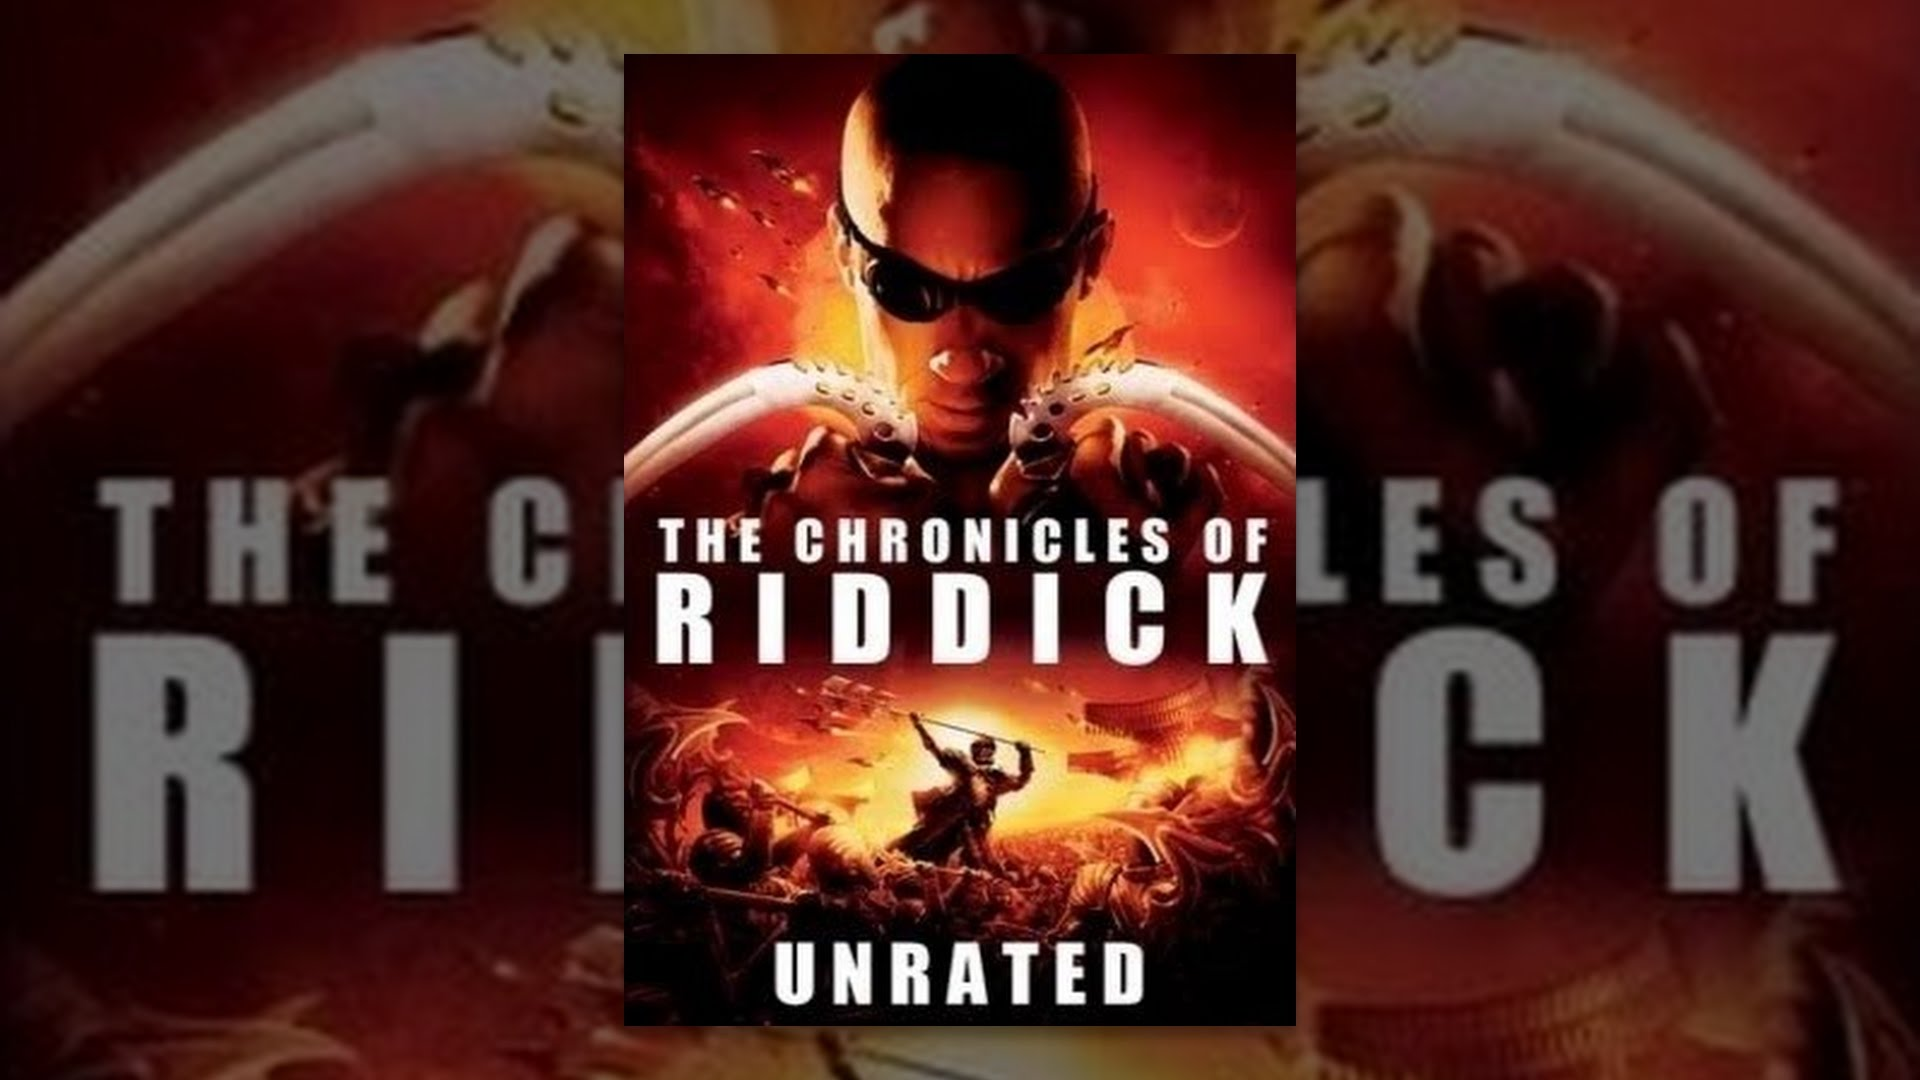 Download The Chronicles of Riddick (Unrated)